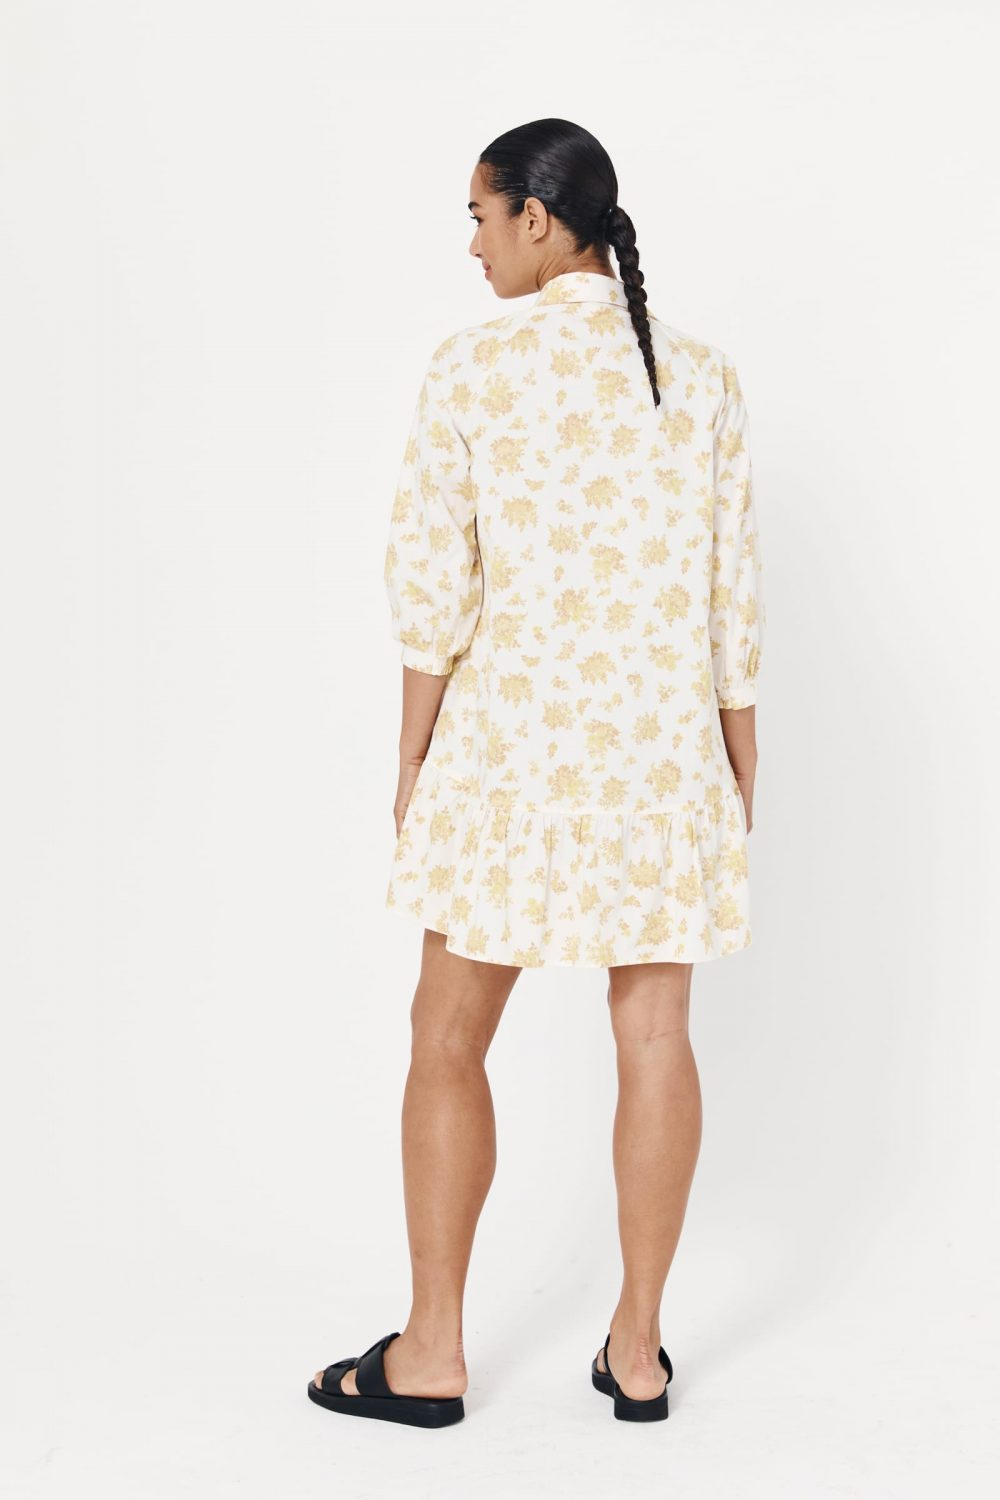 Rowie The Label Rs21 Sodbl Stacey Organic Mini Dress Blossom Spring21 1065